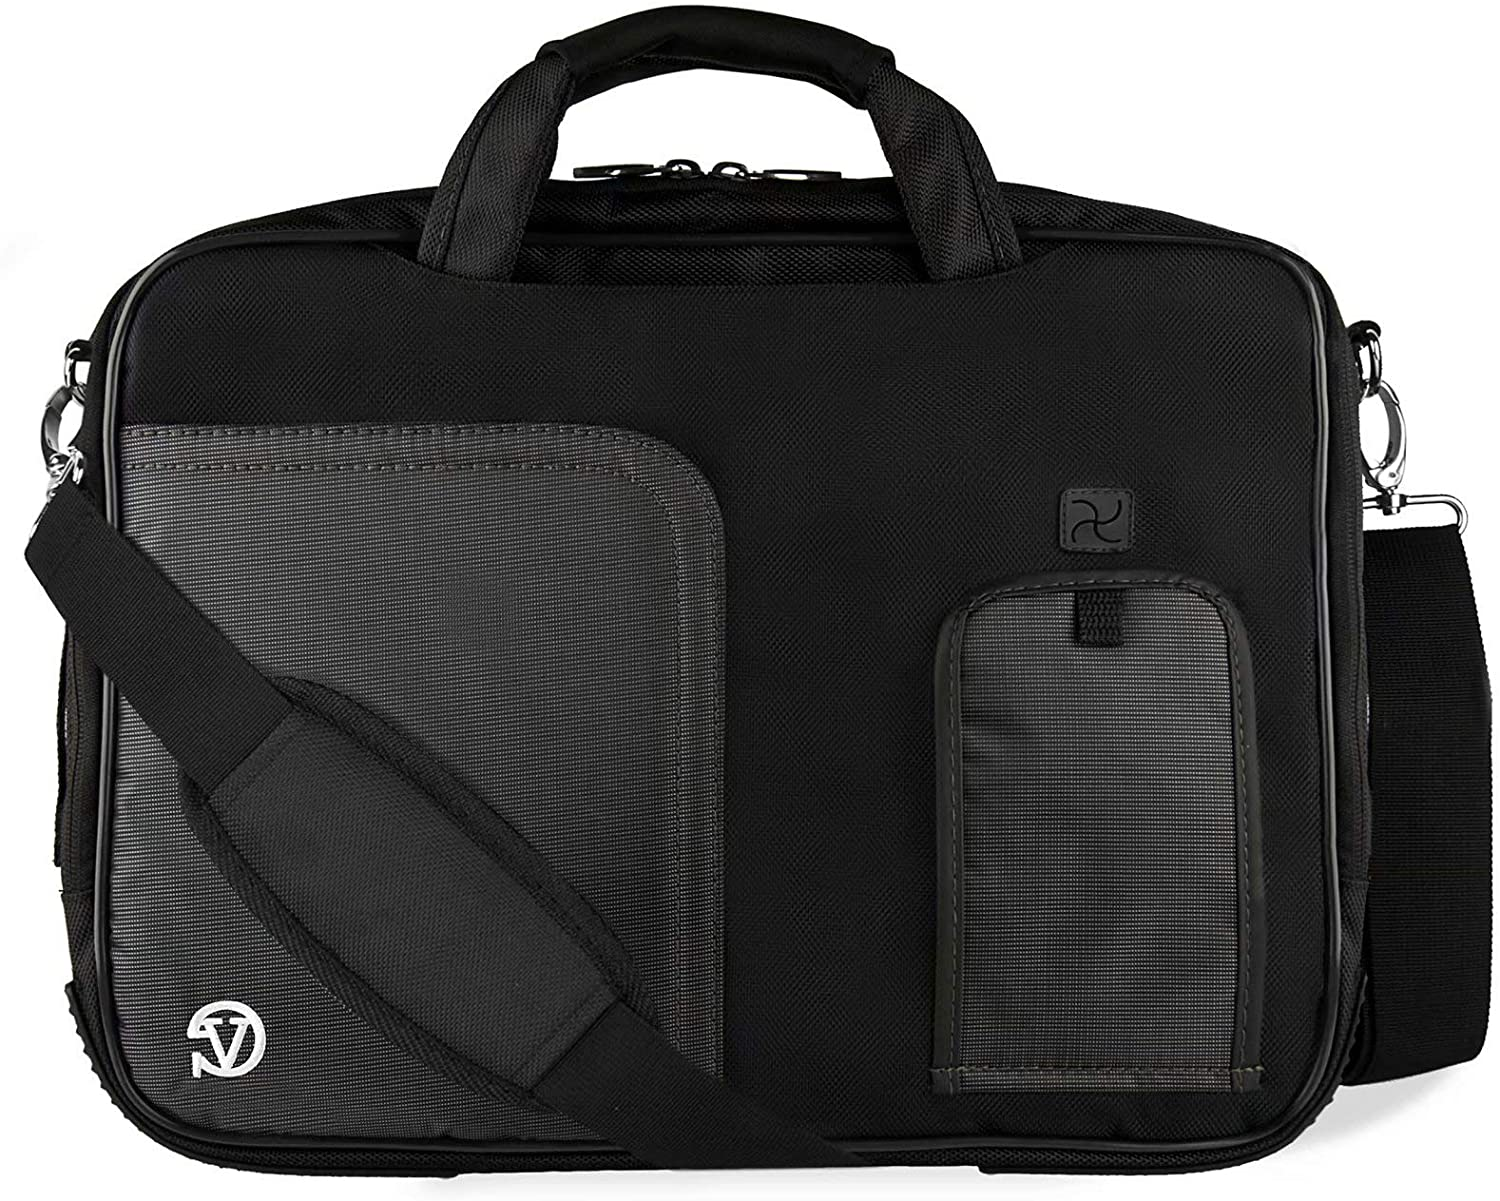 13.3 Inch Laptop Bag for Lenovo ThinkPad L13, L13 Yoga, X13, X13 Yoga, X395